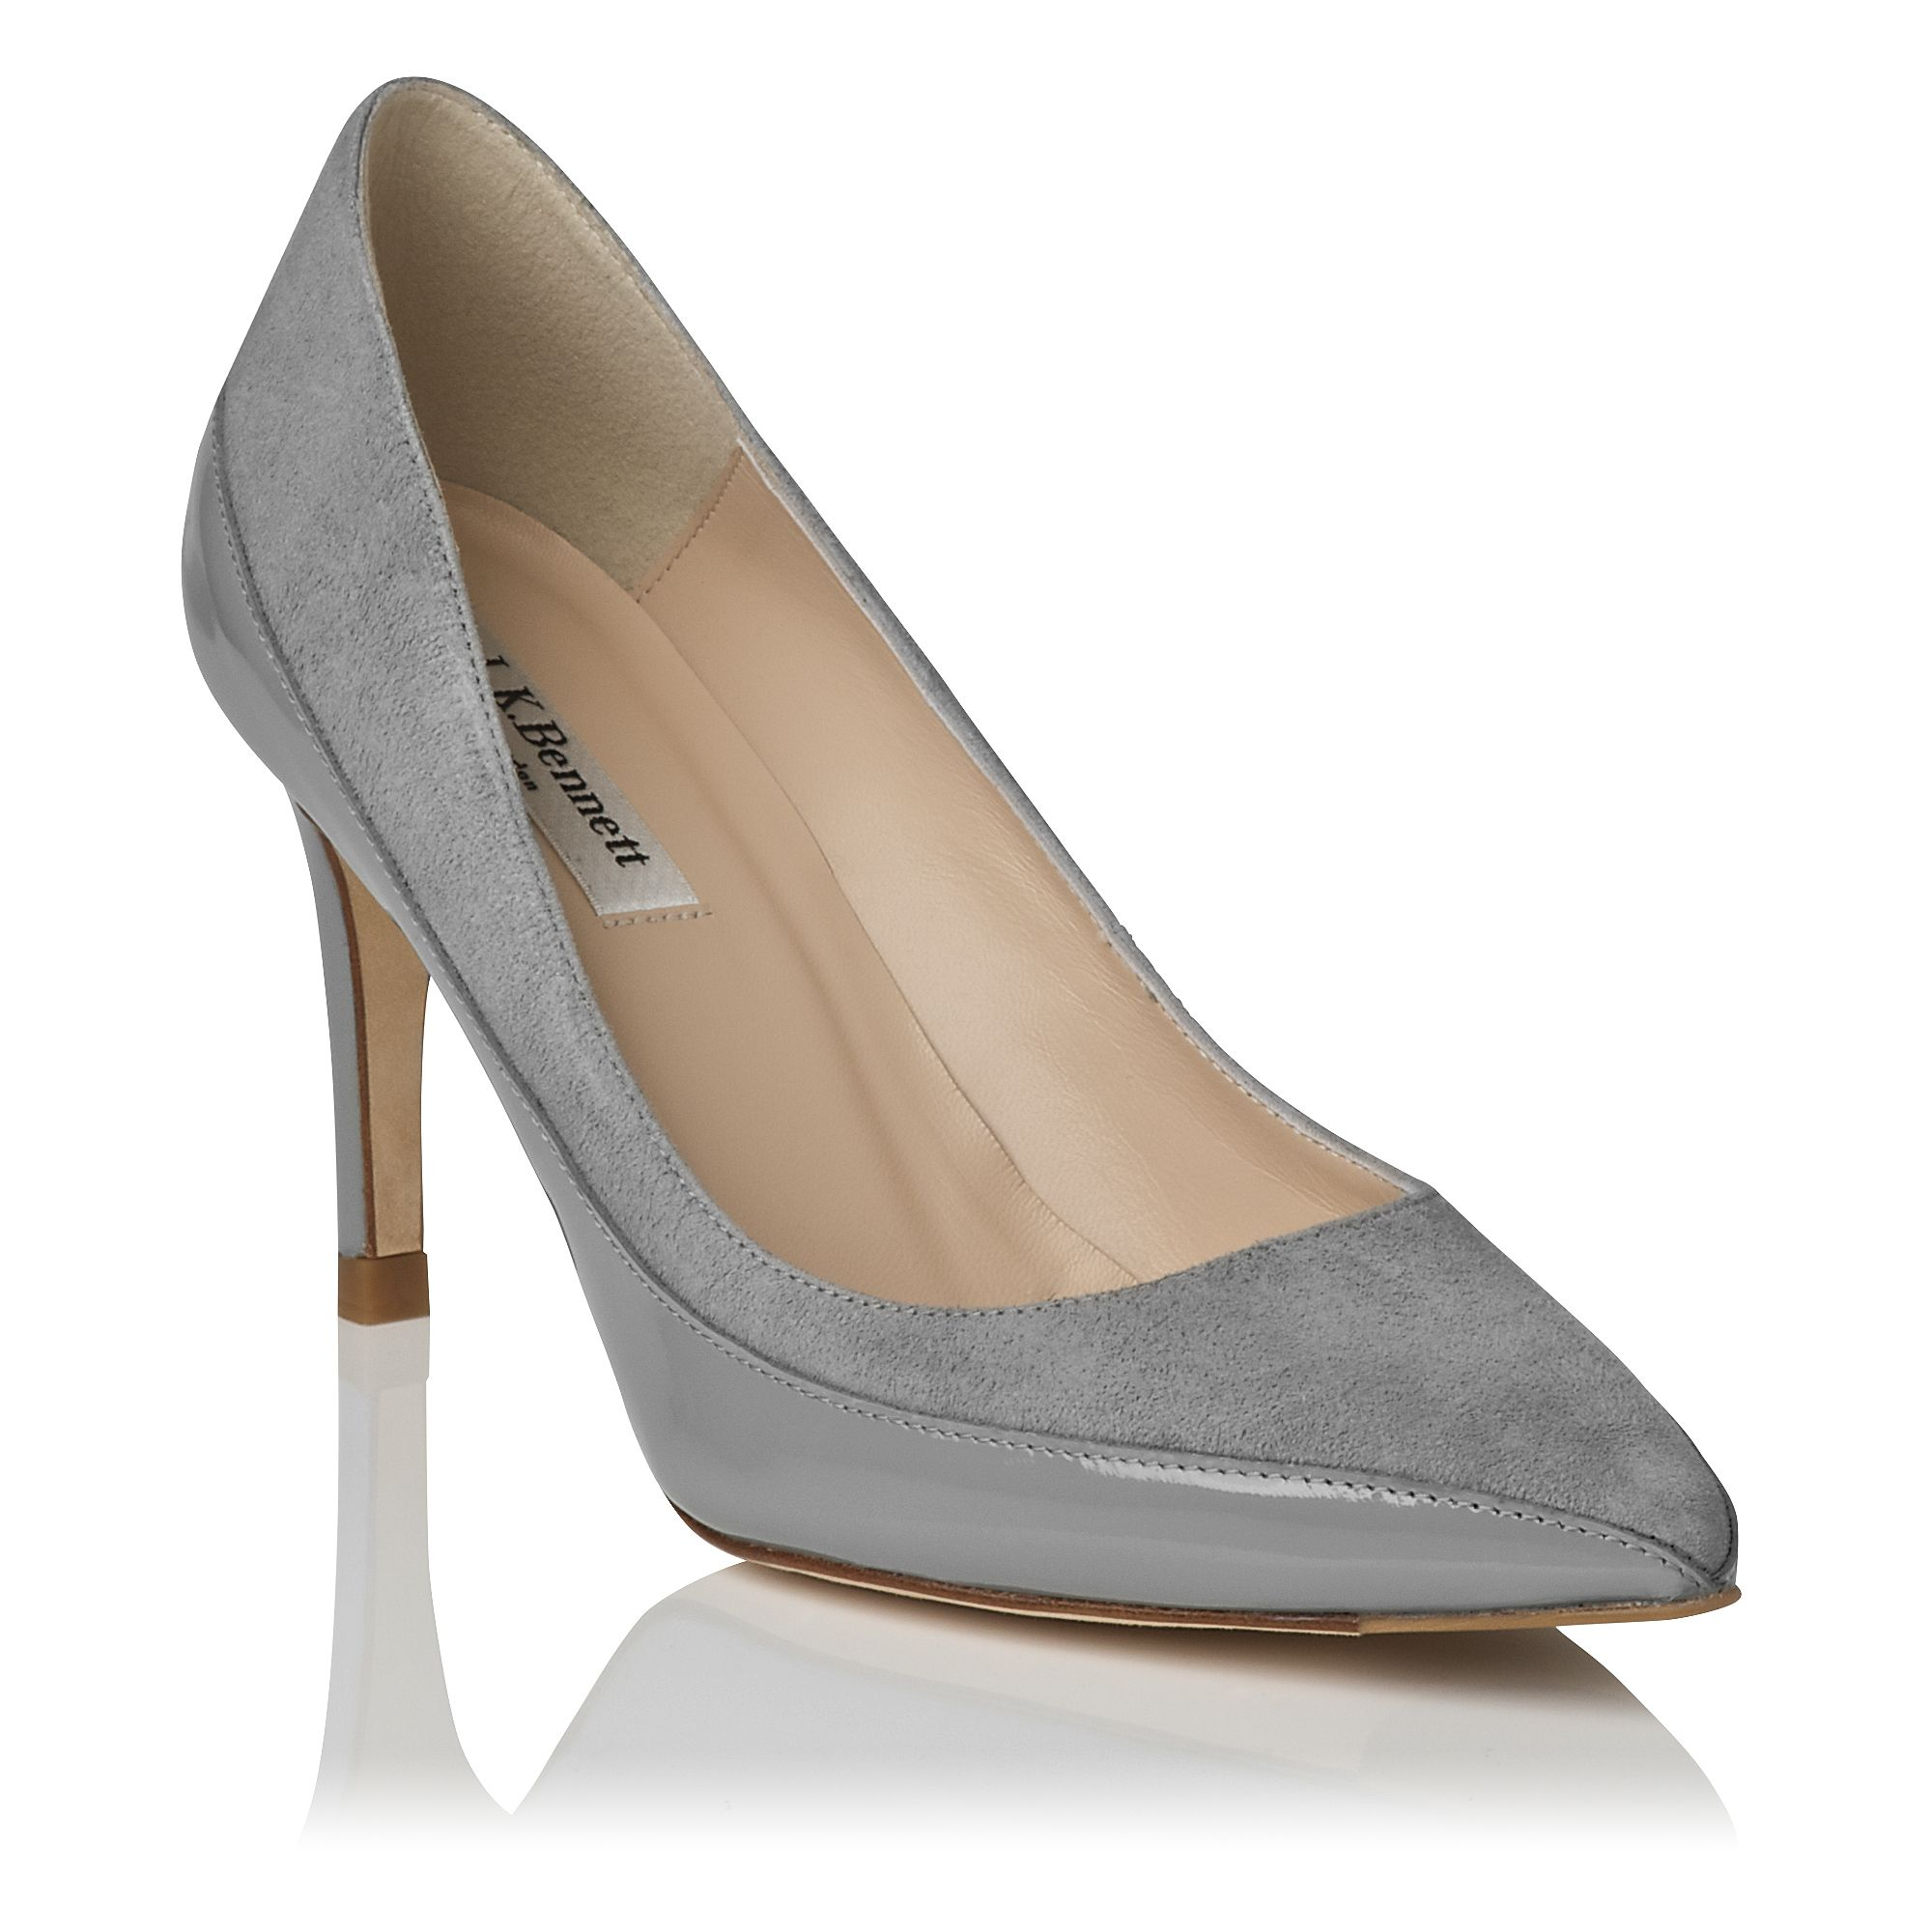 Aspen single sole pointed pumps